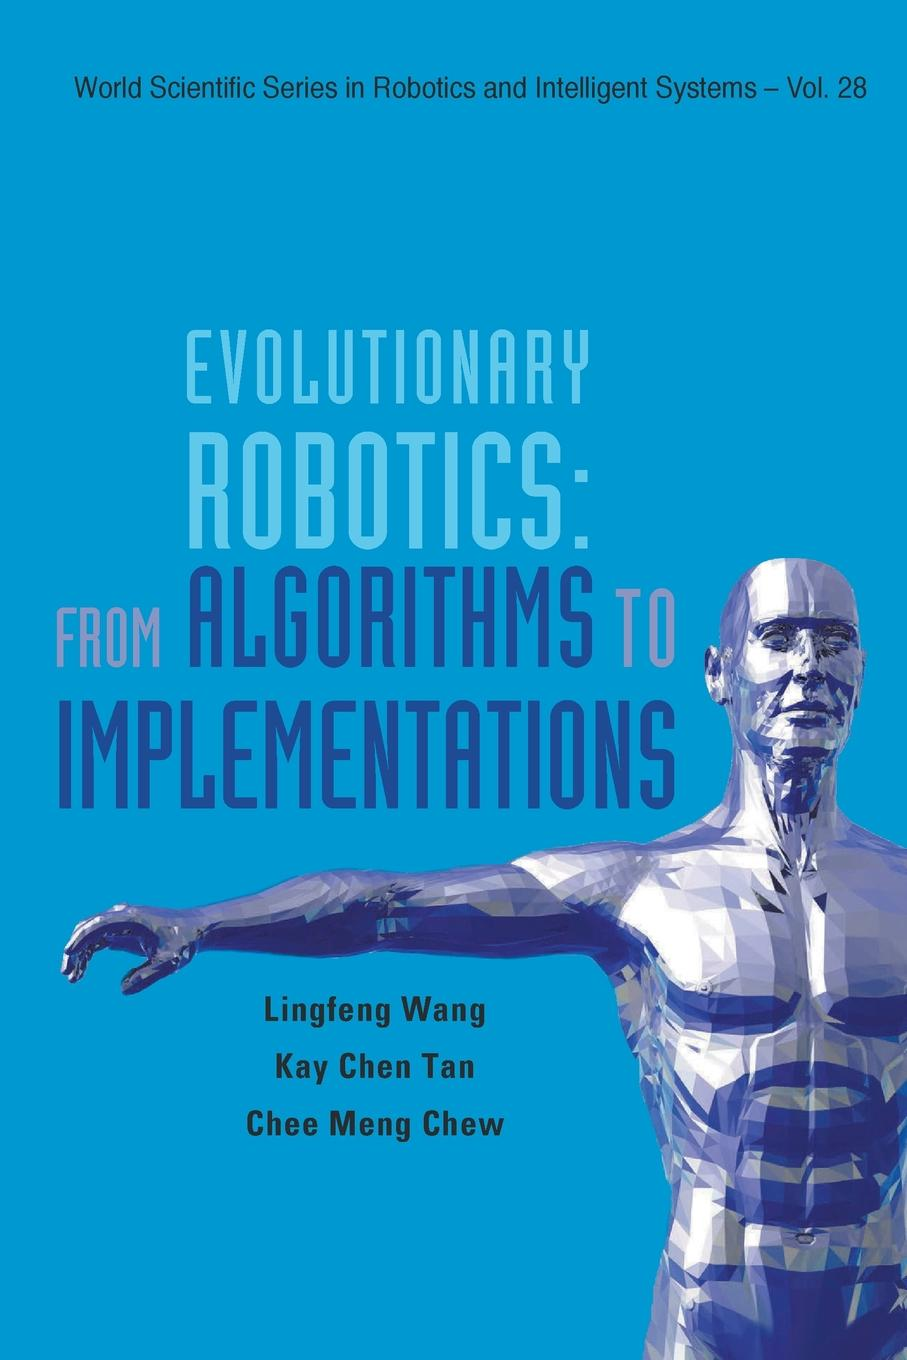 Ling-Feng Wang, Kay Chen Tan, Chee-Meng Chew EVOLUTIONARY ROBOTICS. FROM ALGORITHMS TO IMPLEMENTATIONS new archive based evolutionary multi objective algorithms